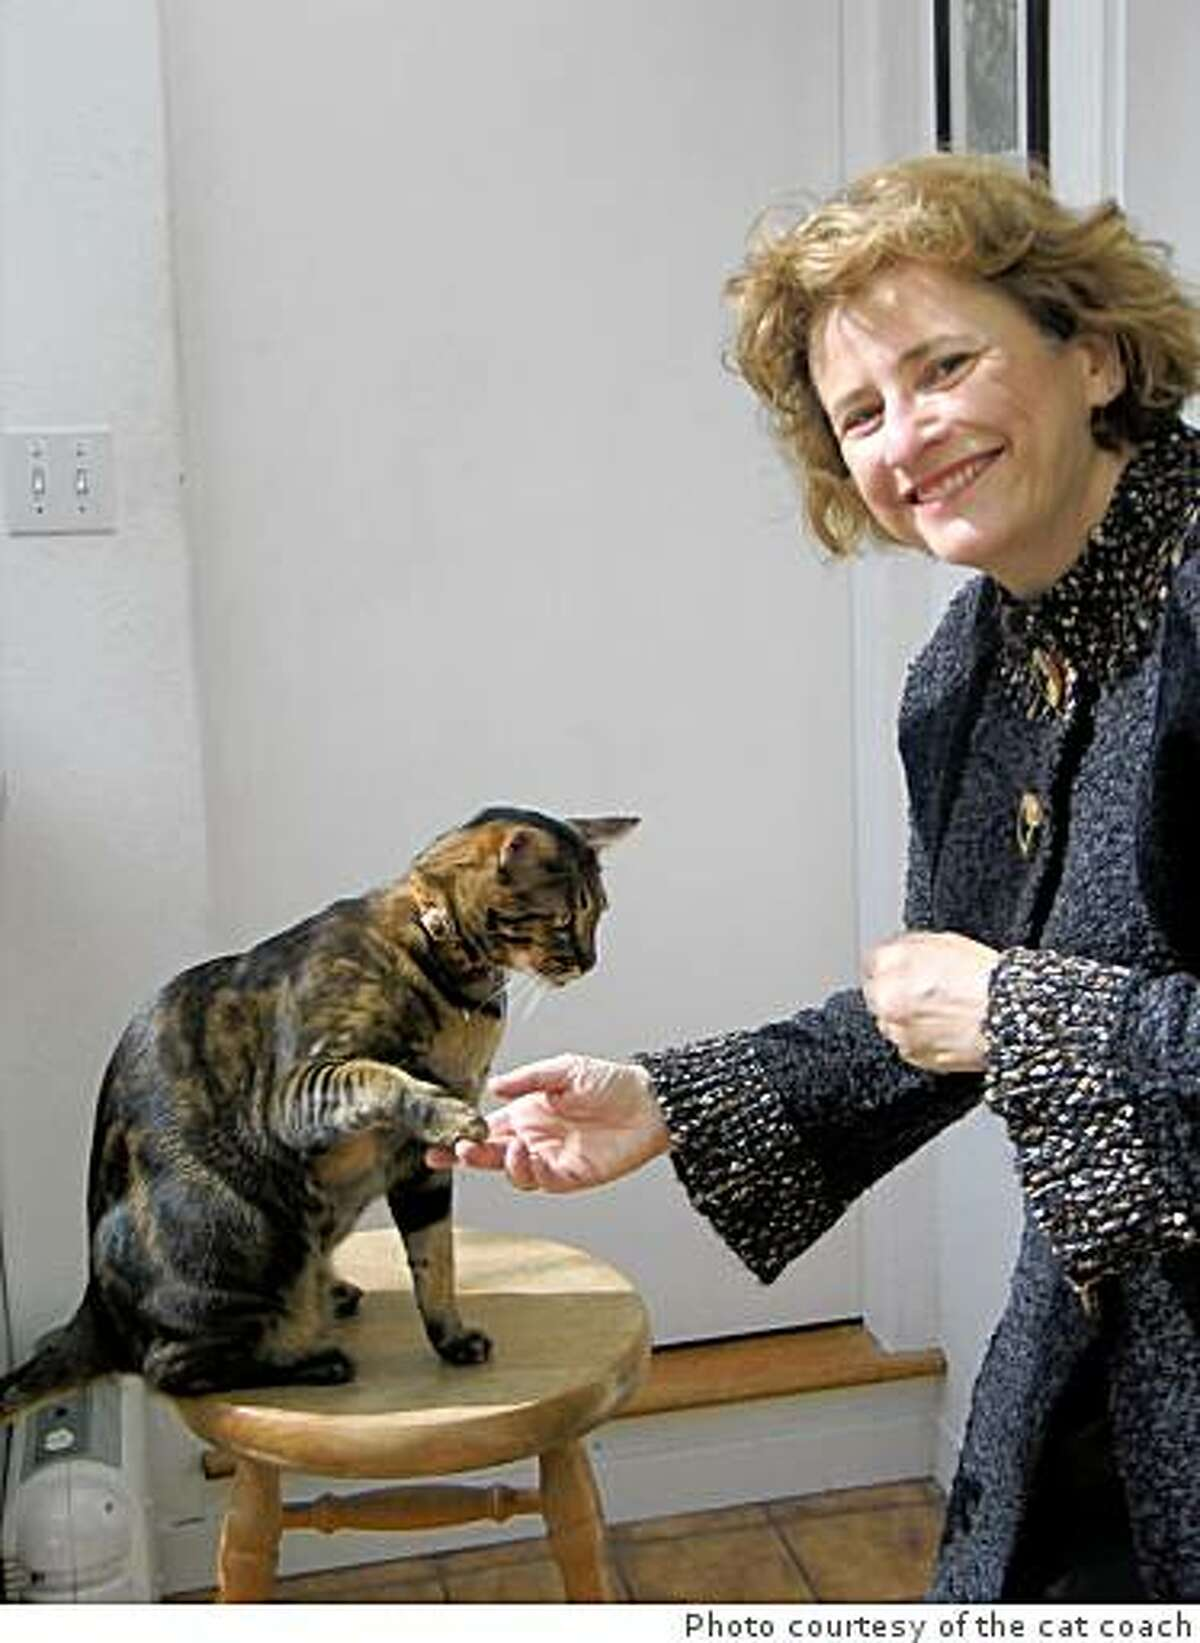 """Marilyn Krieger, a Redwood City-based certified cat behavior consultant, has trained her own cats as well as the cats of her clients using a clicker and positive reinforcement. """"Besides clicker training for behaviors like scratching or inappropriate elimination or aggression, you can teach them tricks,"""" she says. """"My cats shake hands, and high five. They jump through hoops. They also retrieve my keys for me."""""""